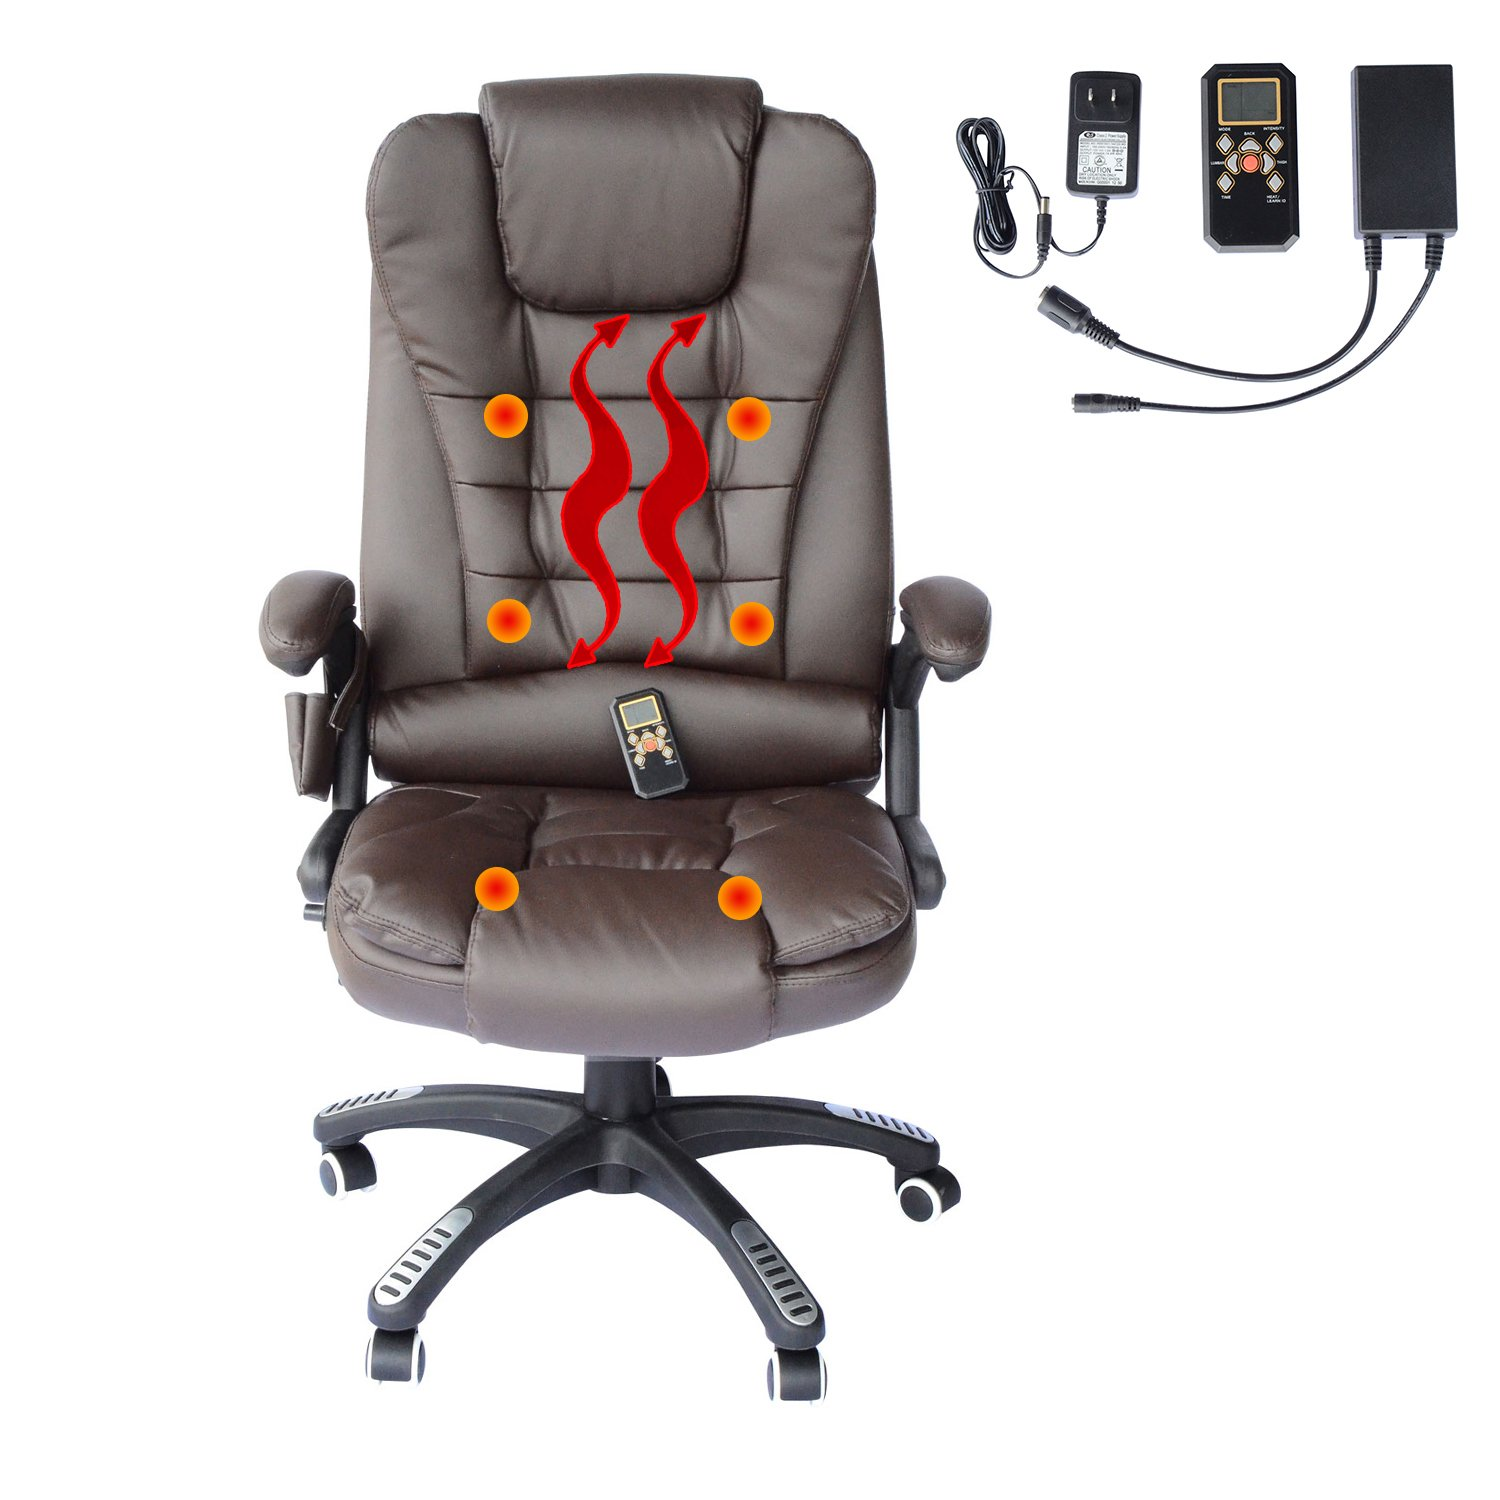 tek chair burgundy syncrotekbur use with executive syncro chairs adjustable arms hour office